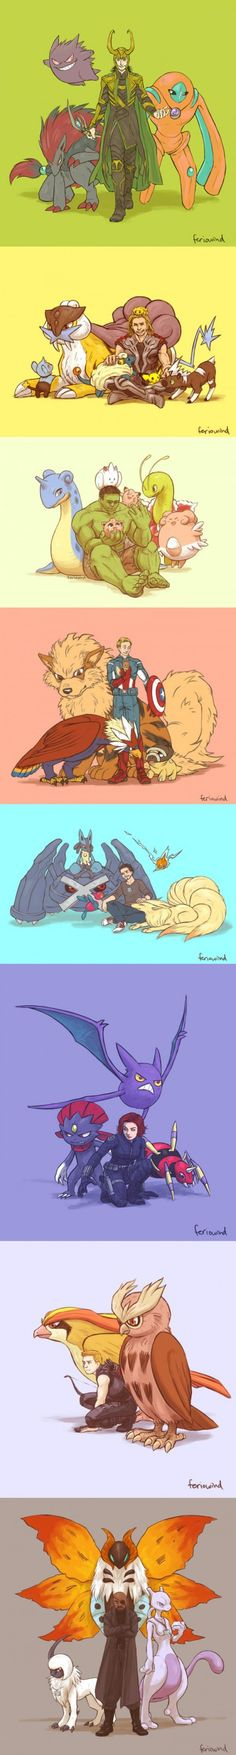 The Avengers have their Pokemon ready to go.